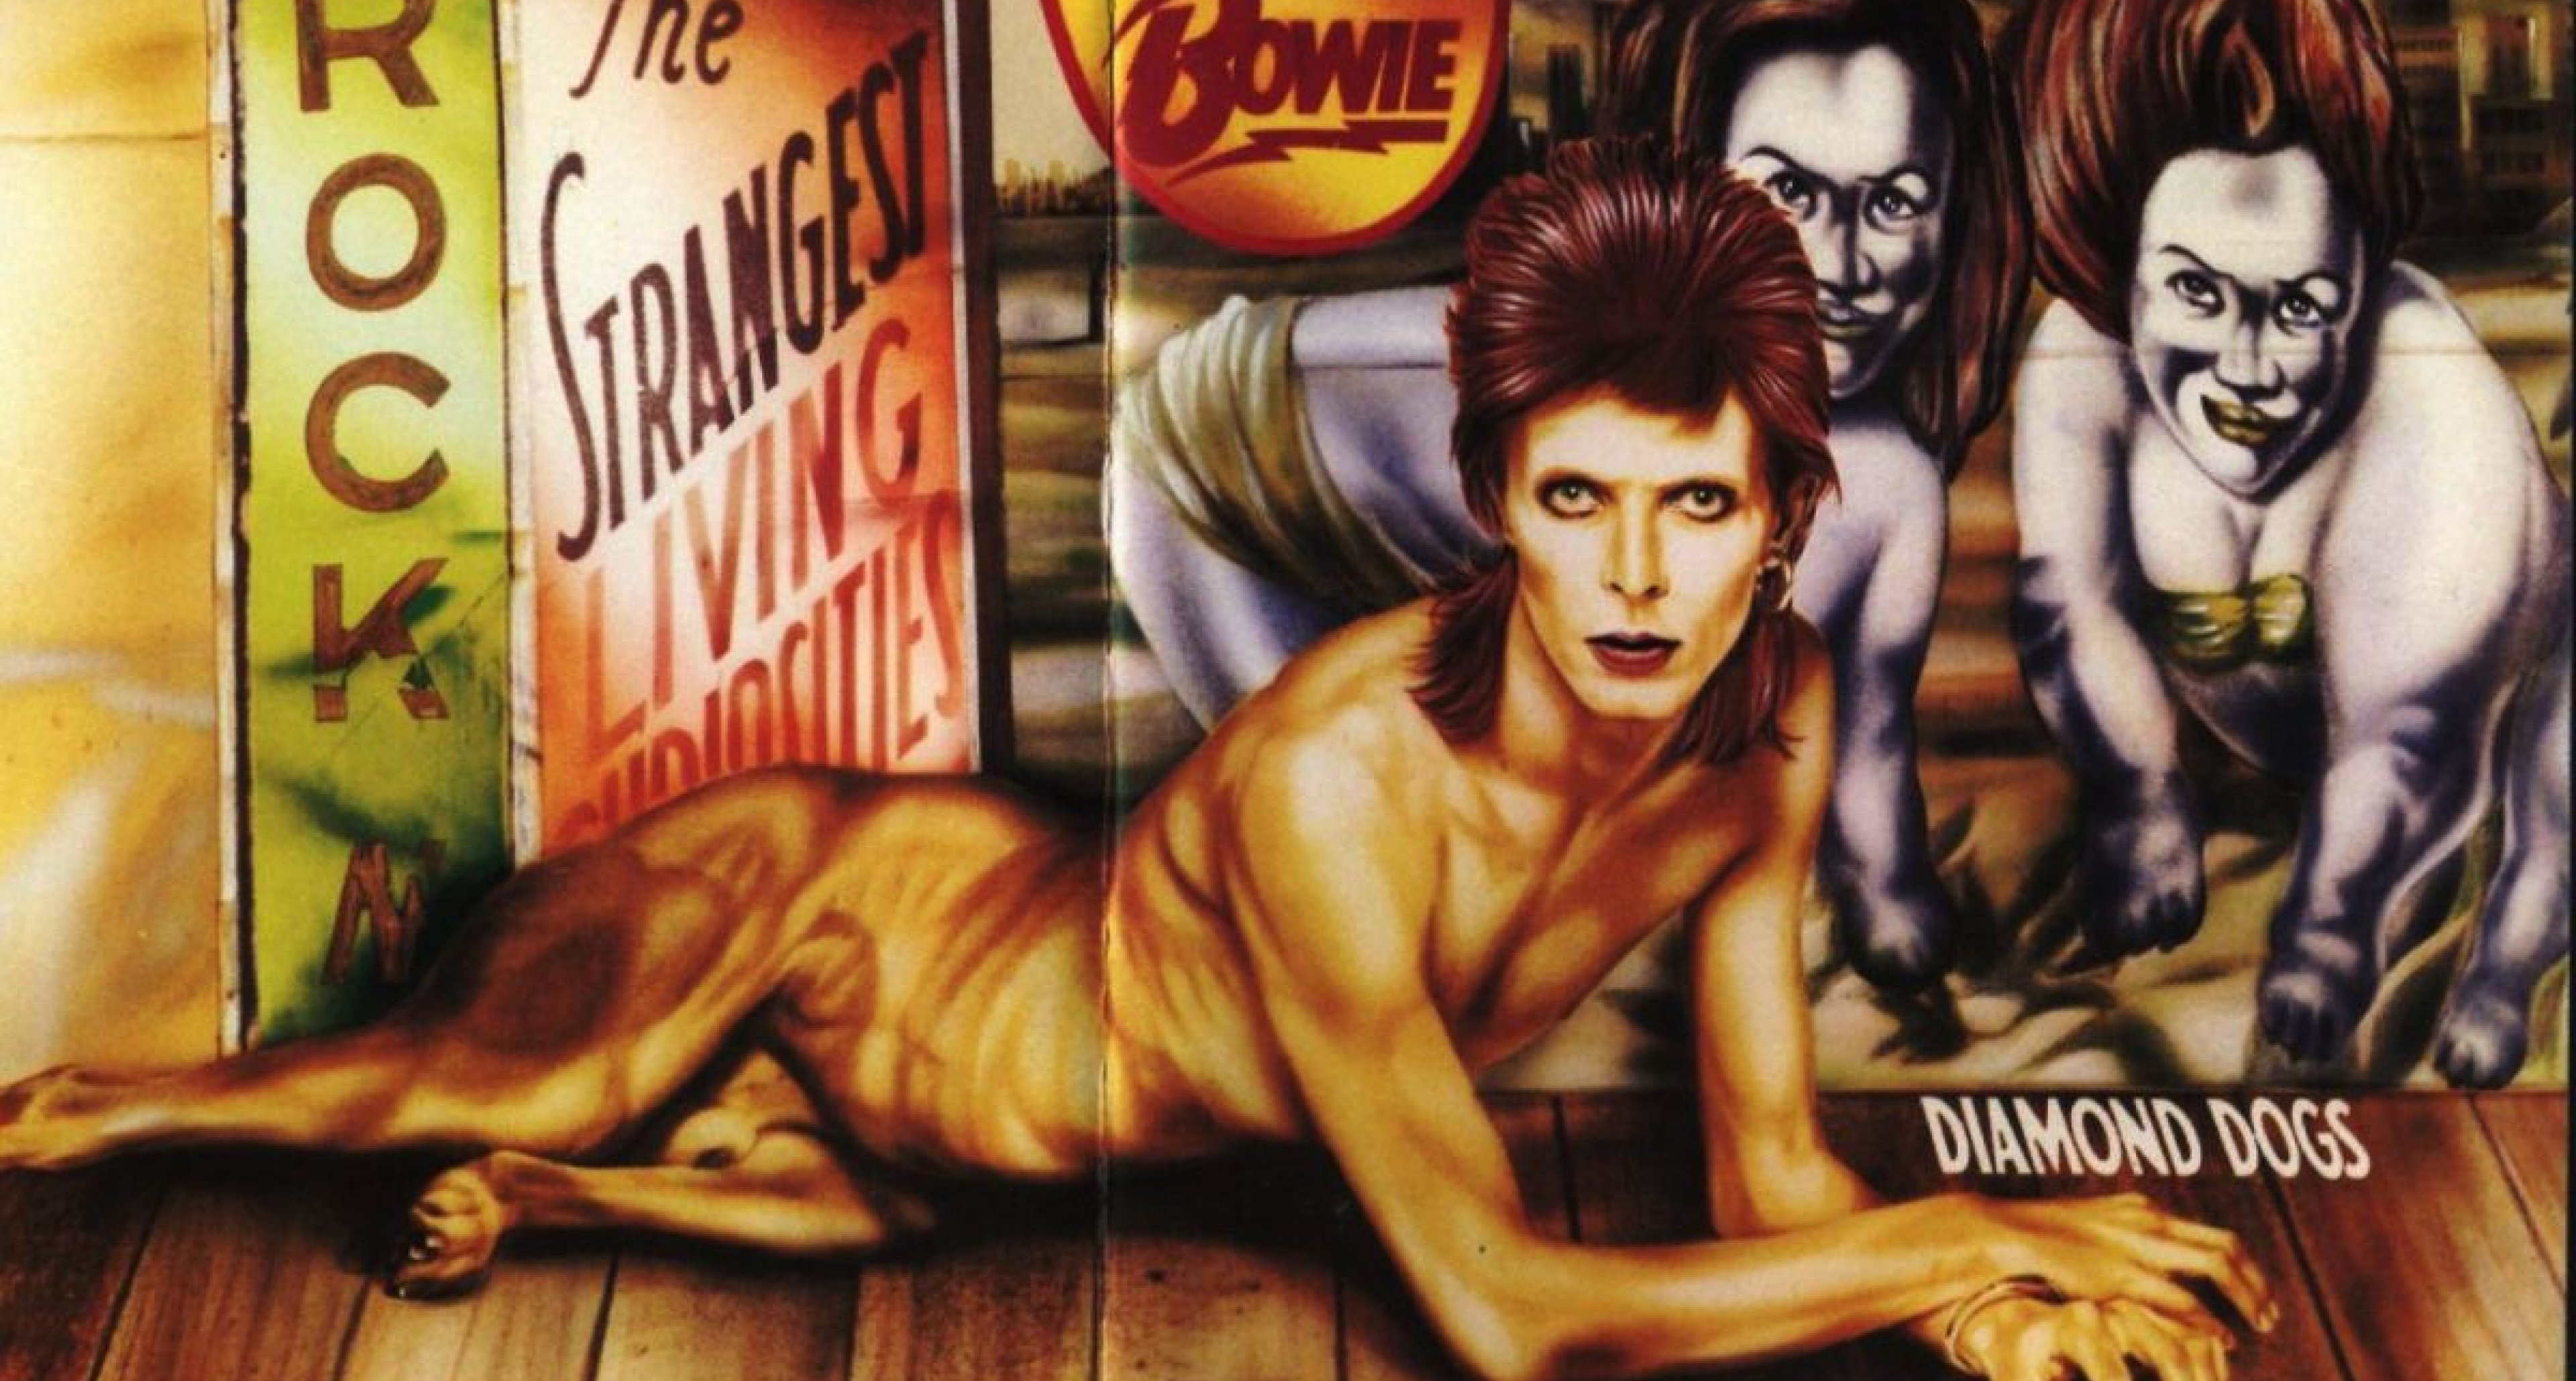 Diamond Dogs, by David Bowie